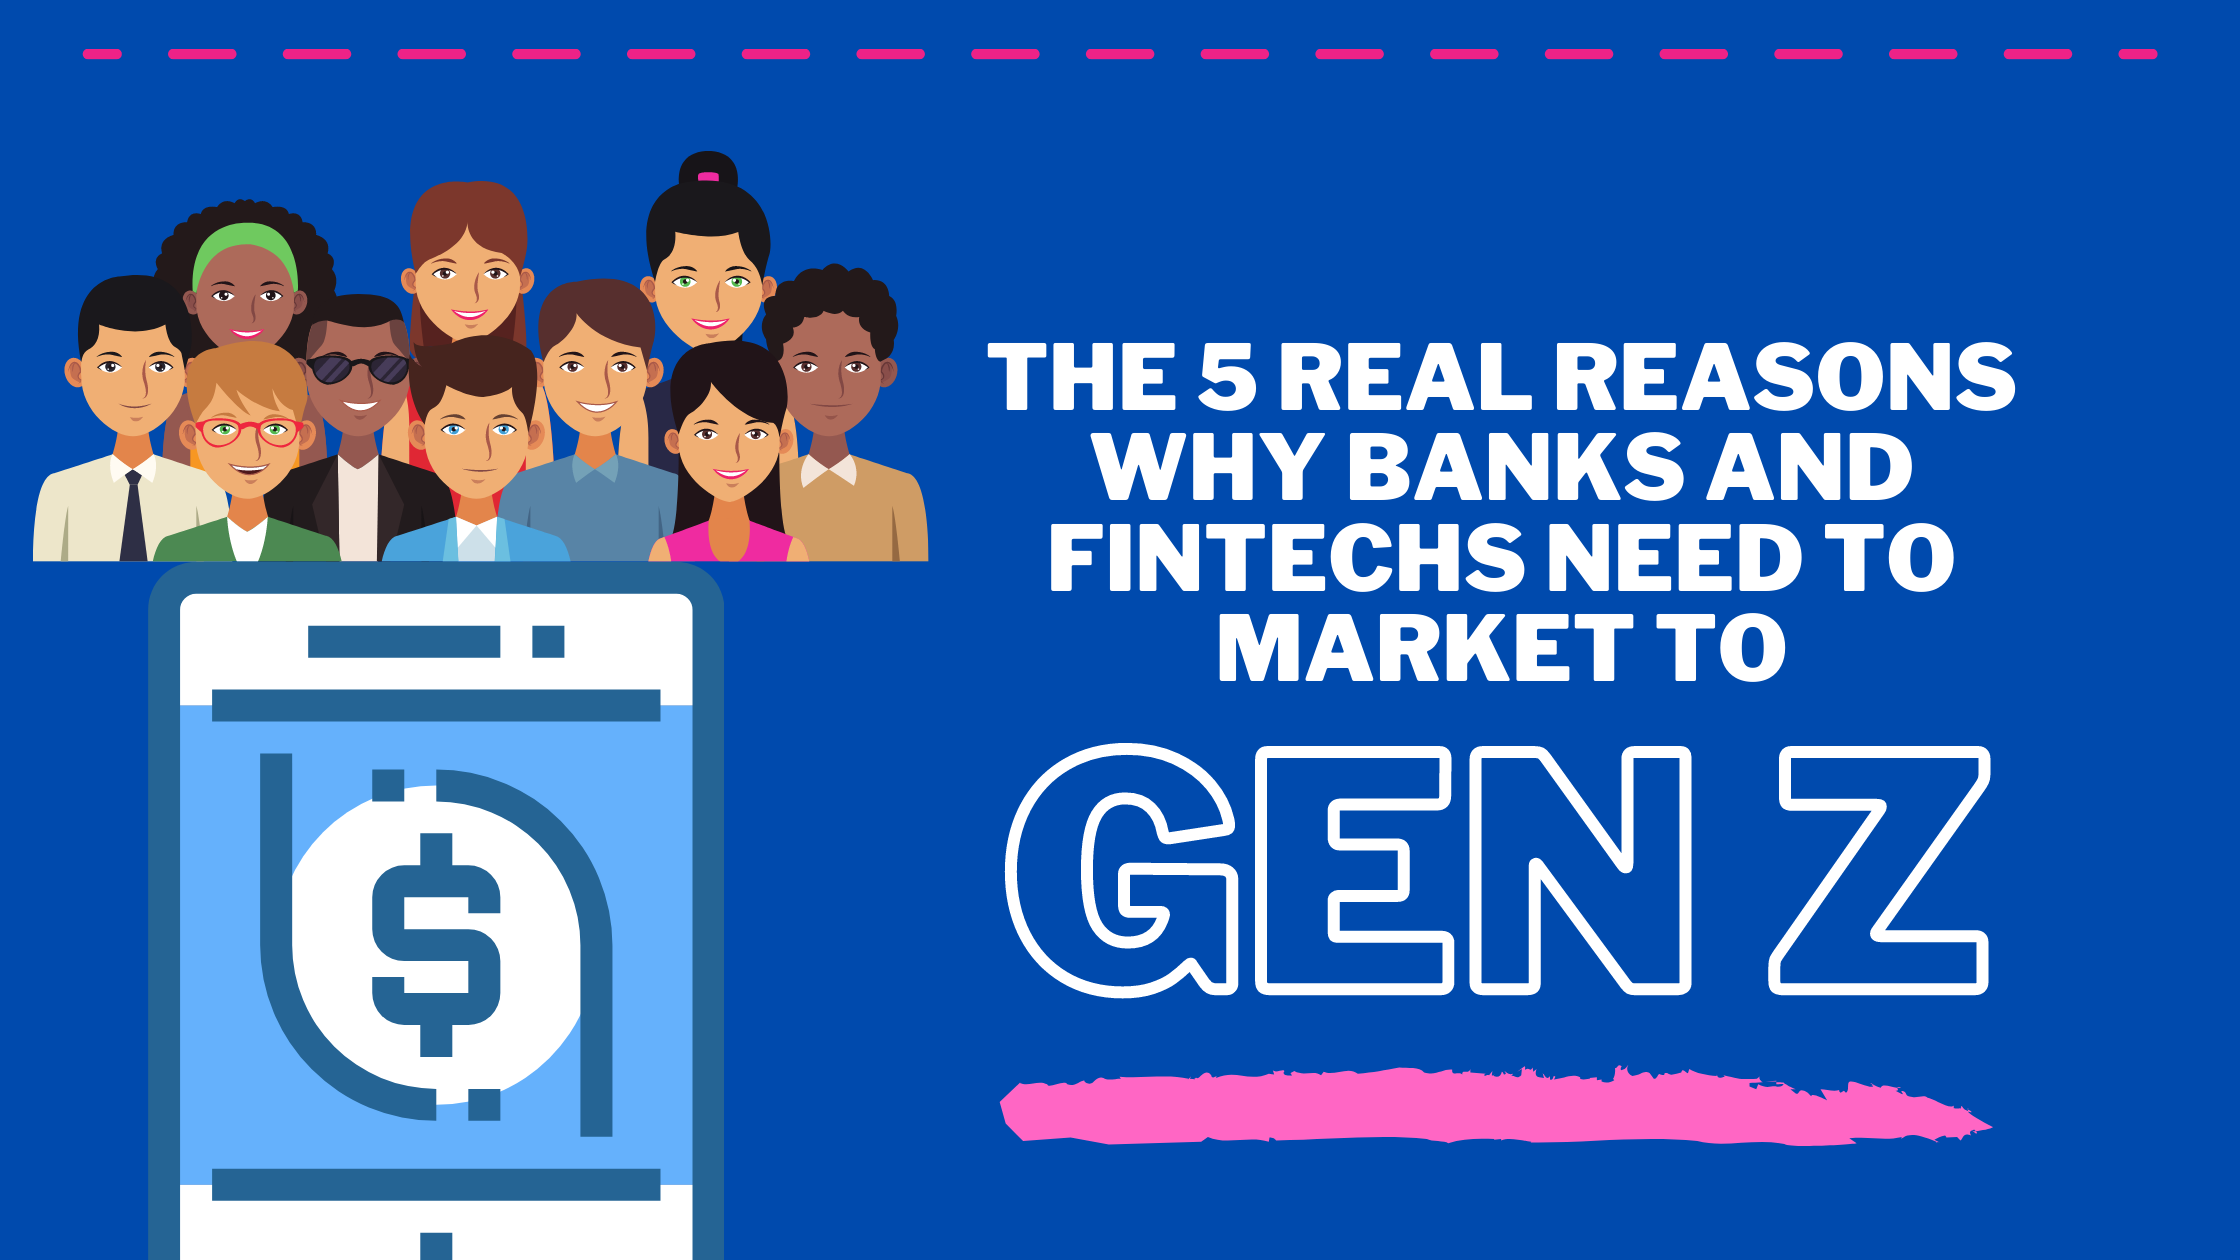 fintechs-banks-need-to-target-gen-z